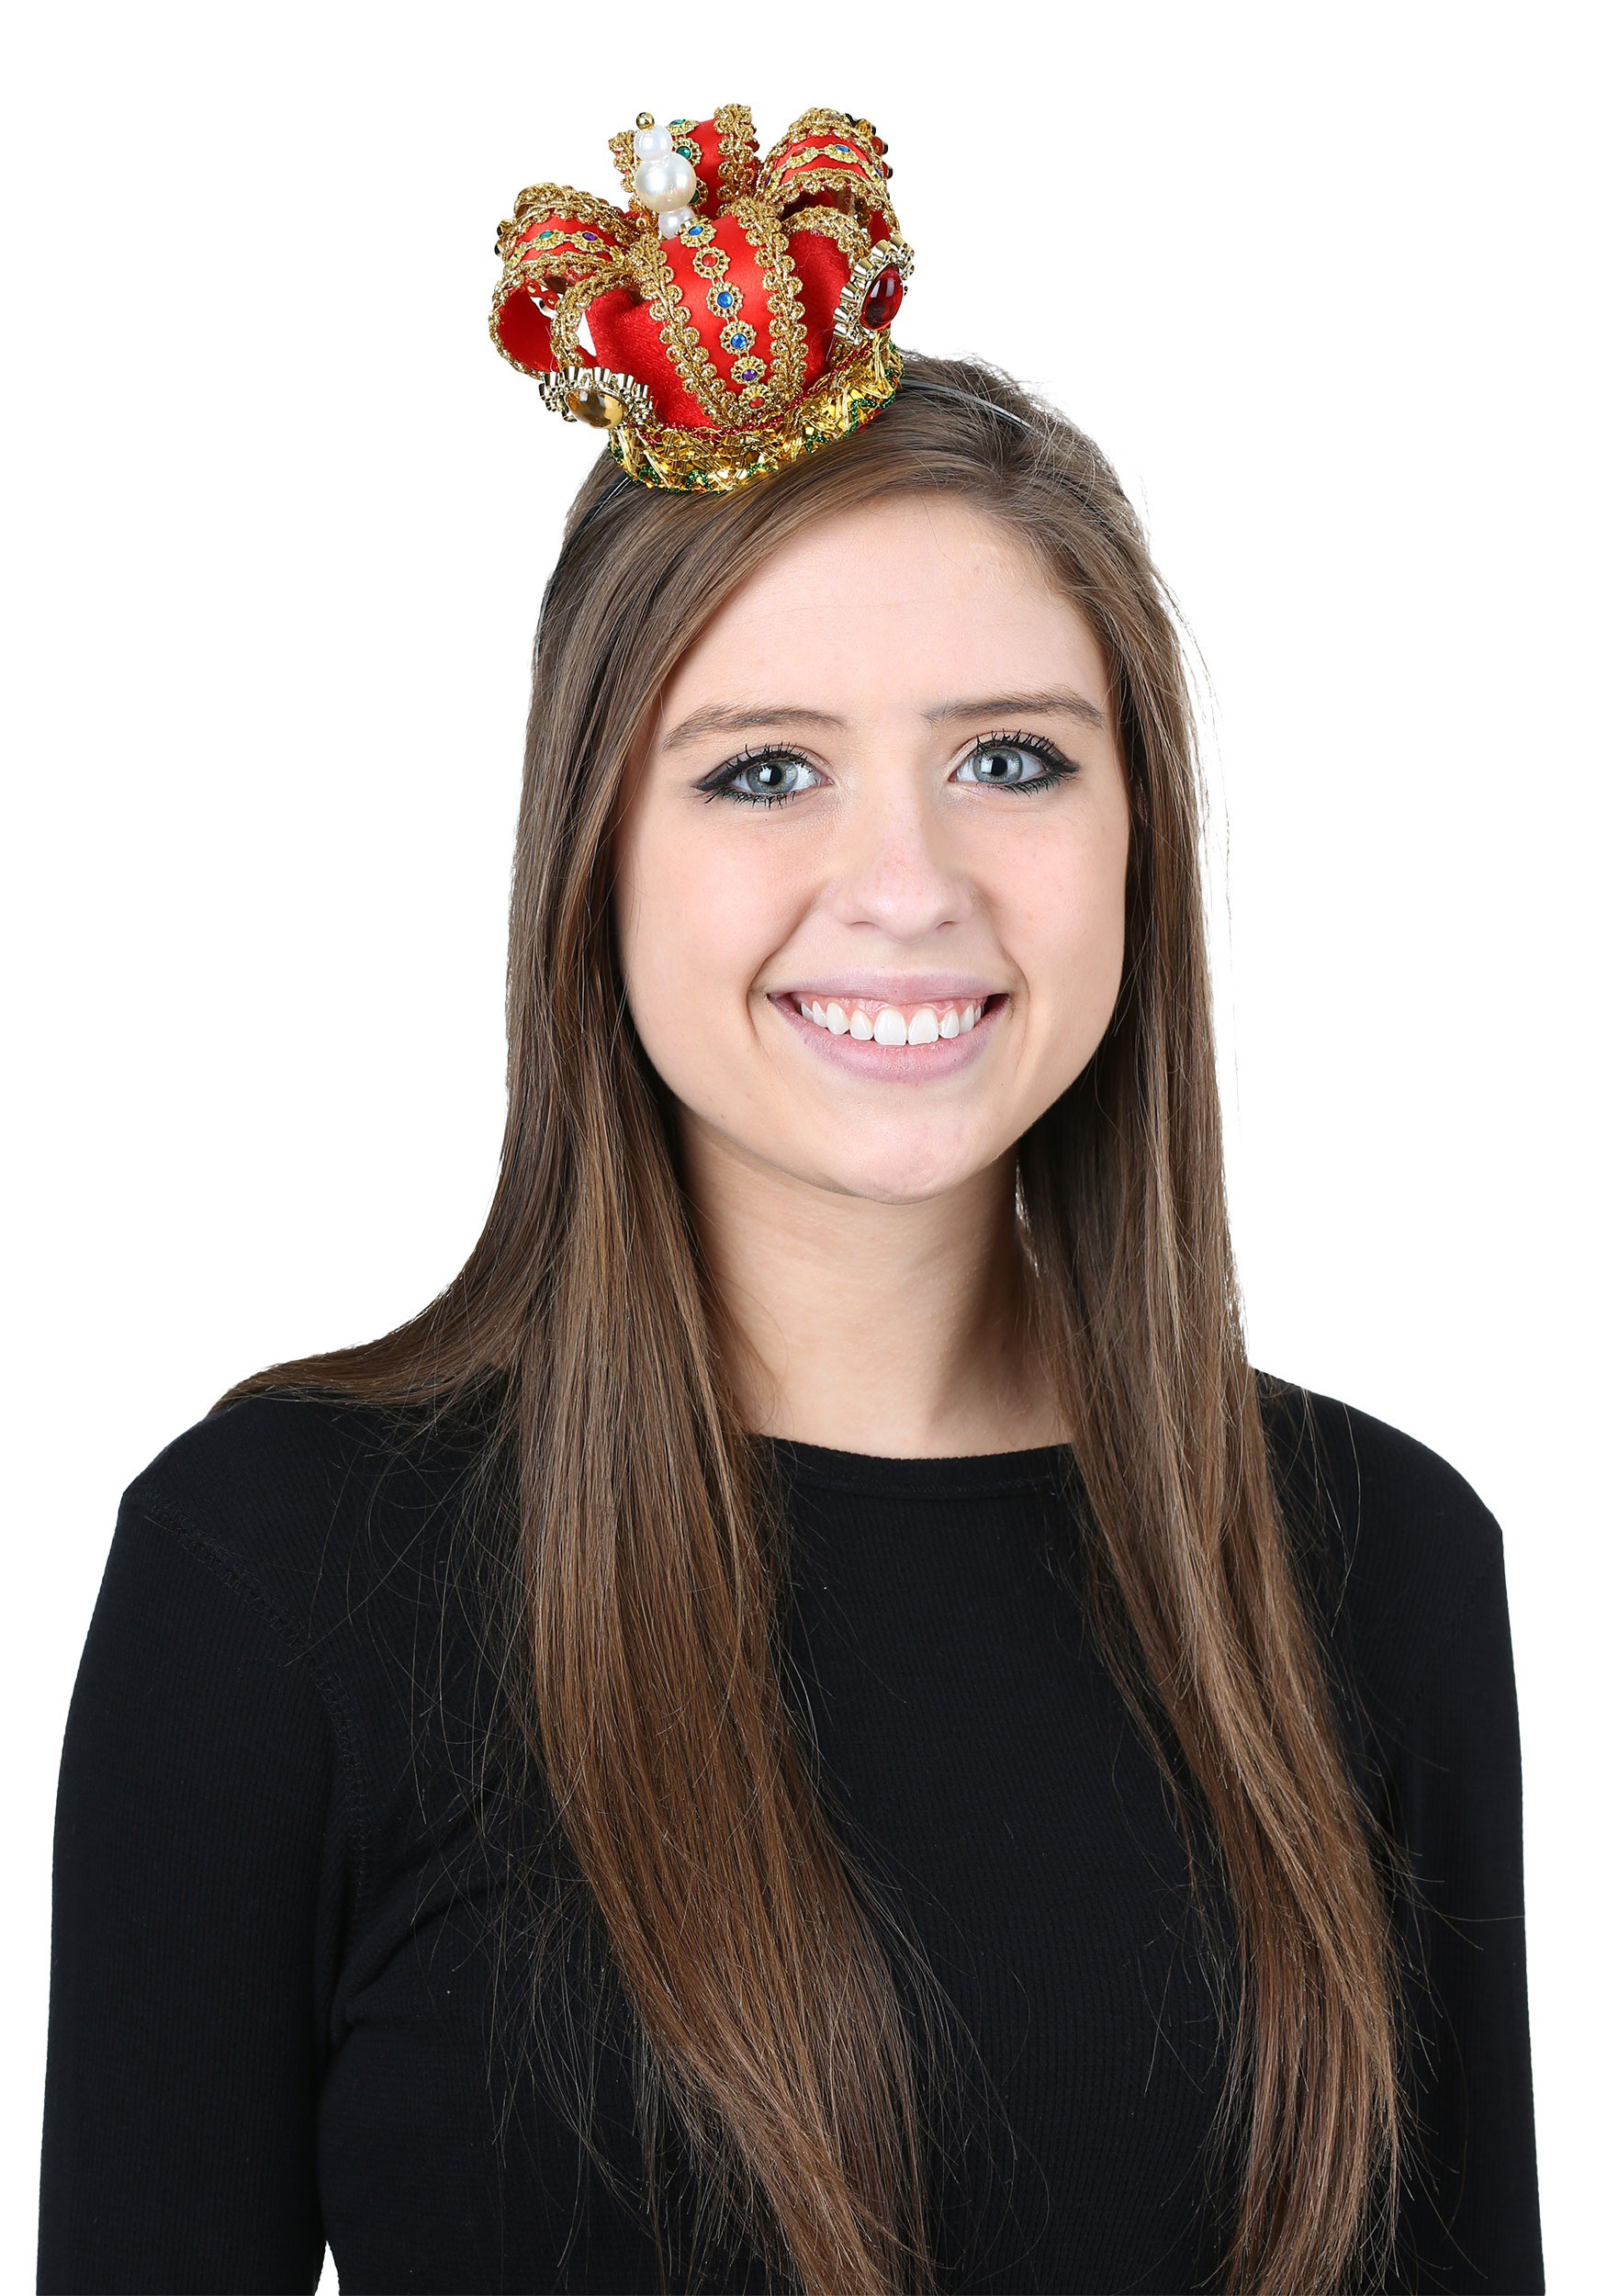 sc 1 st  Halloween Costumes : costume queen crown  - Germanpascual.Com